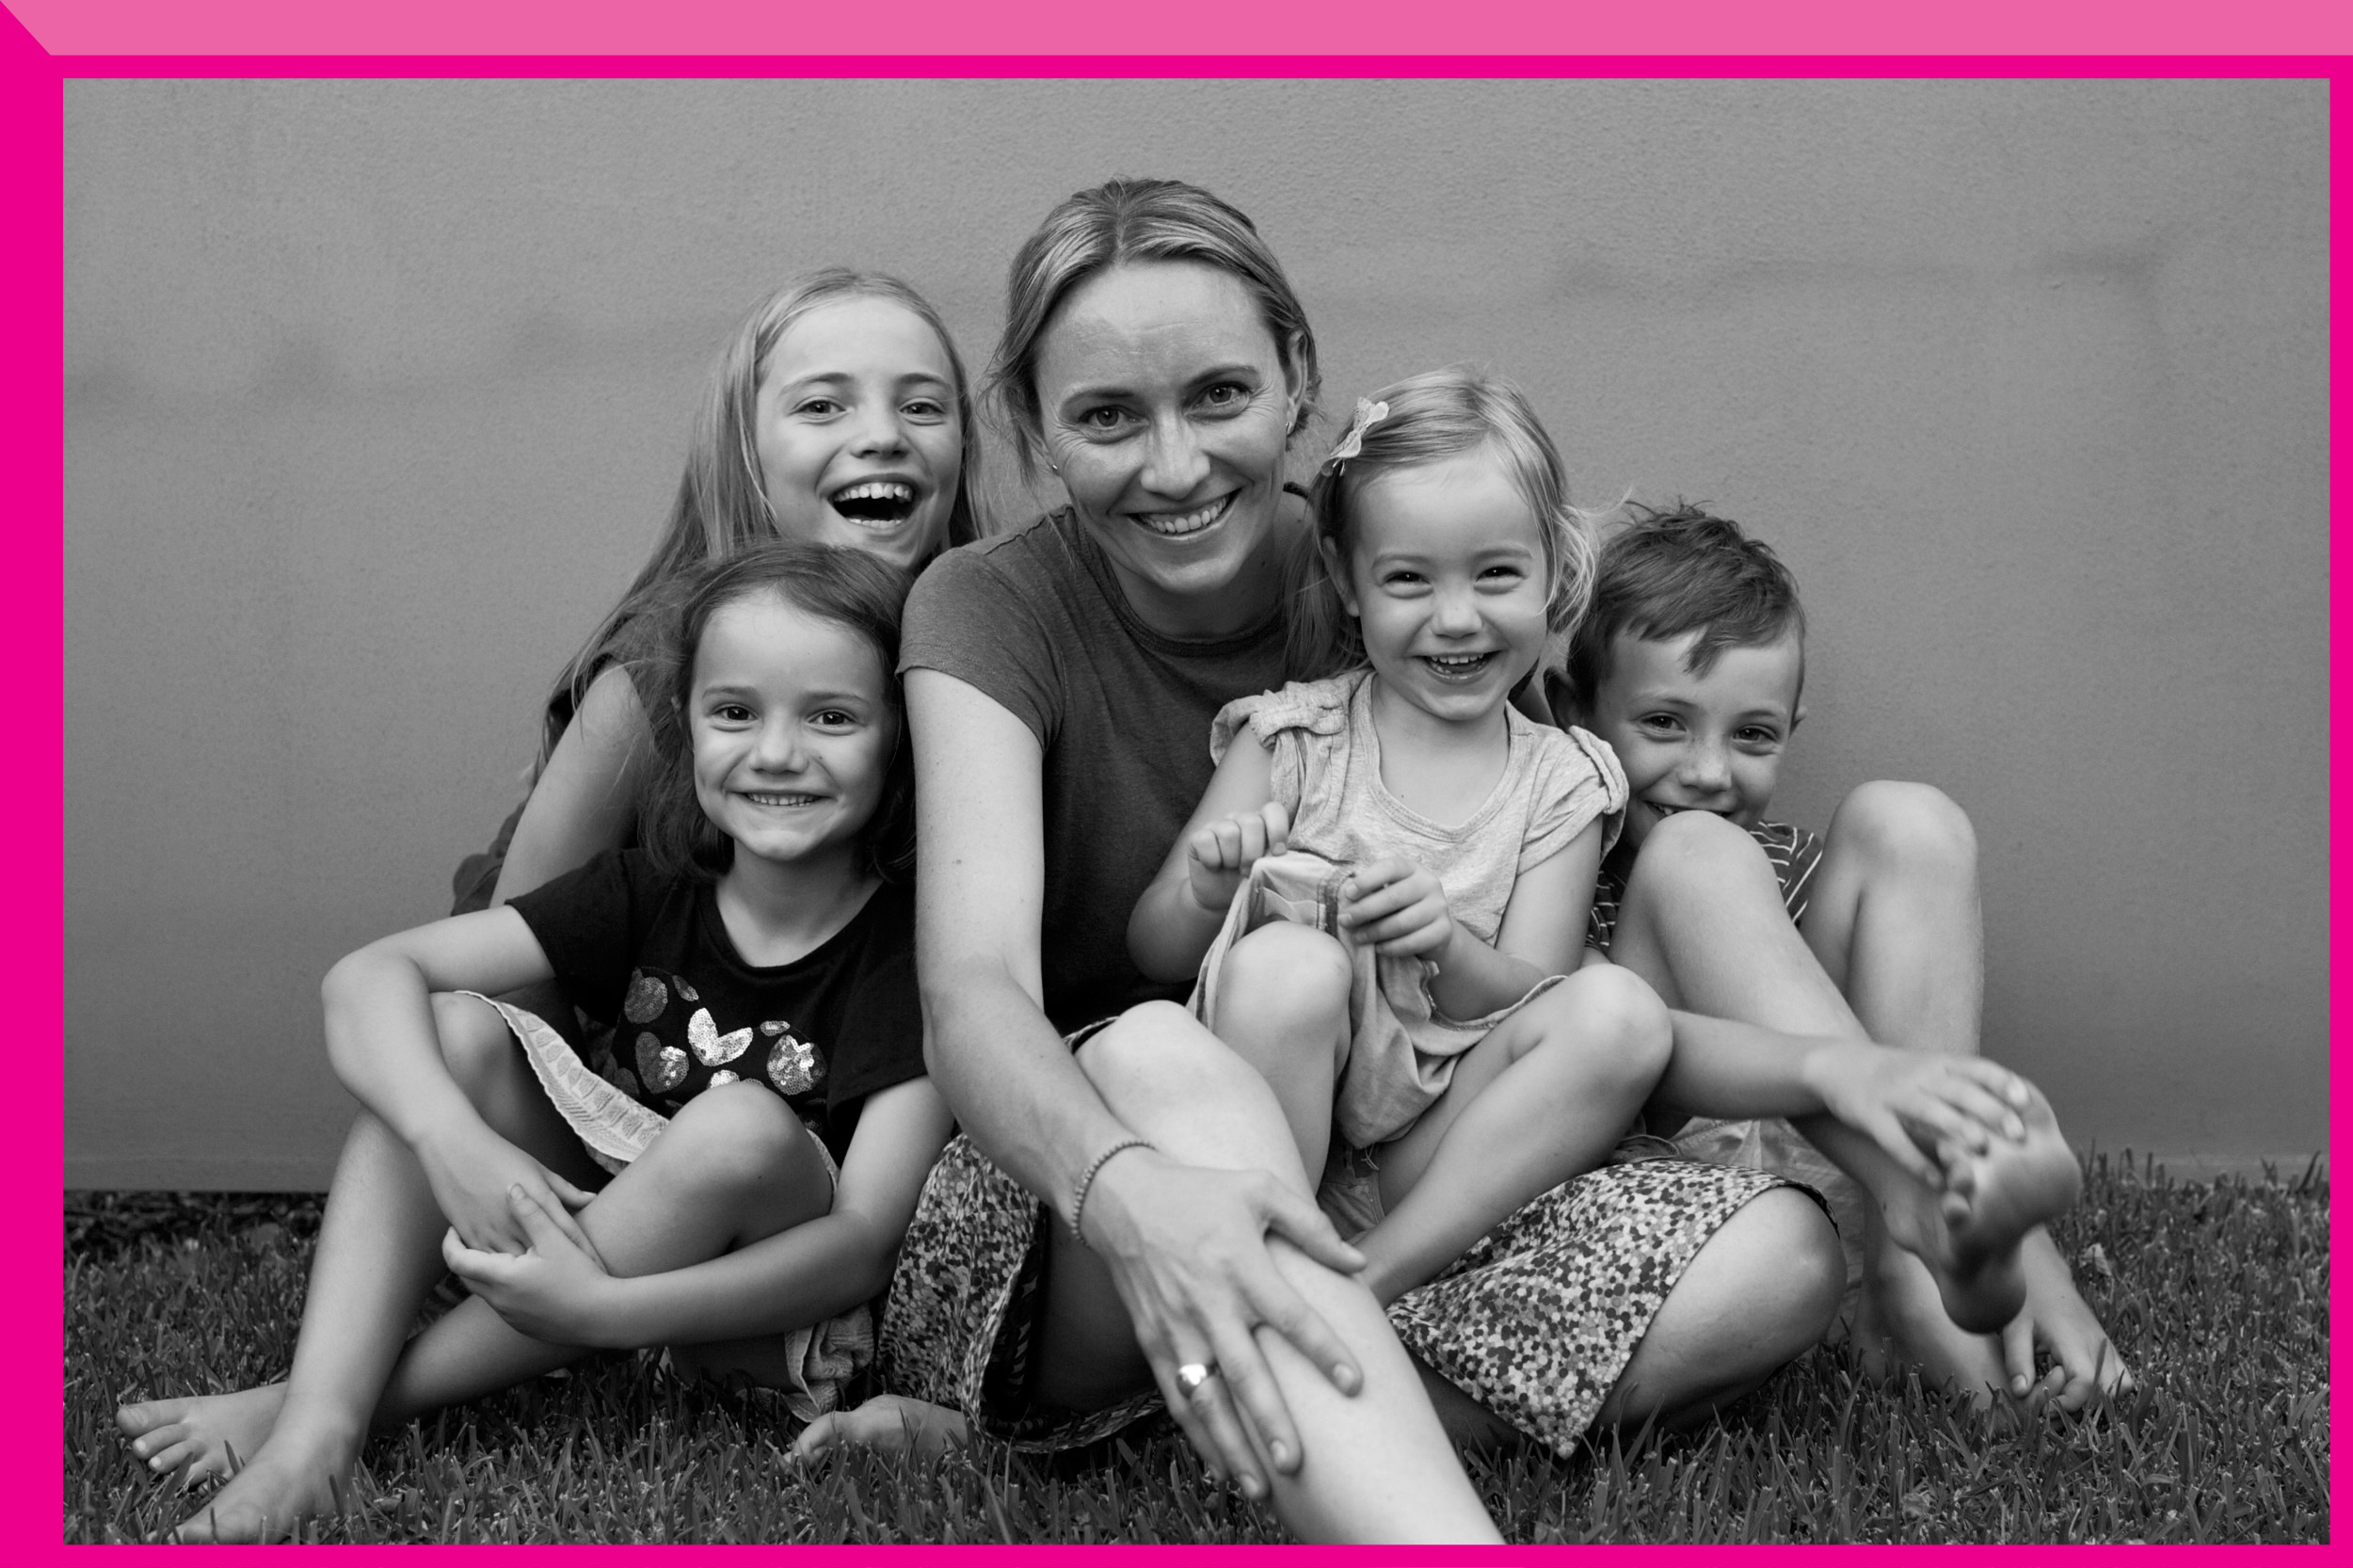 Kate Kennedy with four of her five kids: Maisy, Juliet, Eve and Aiden